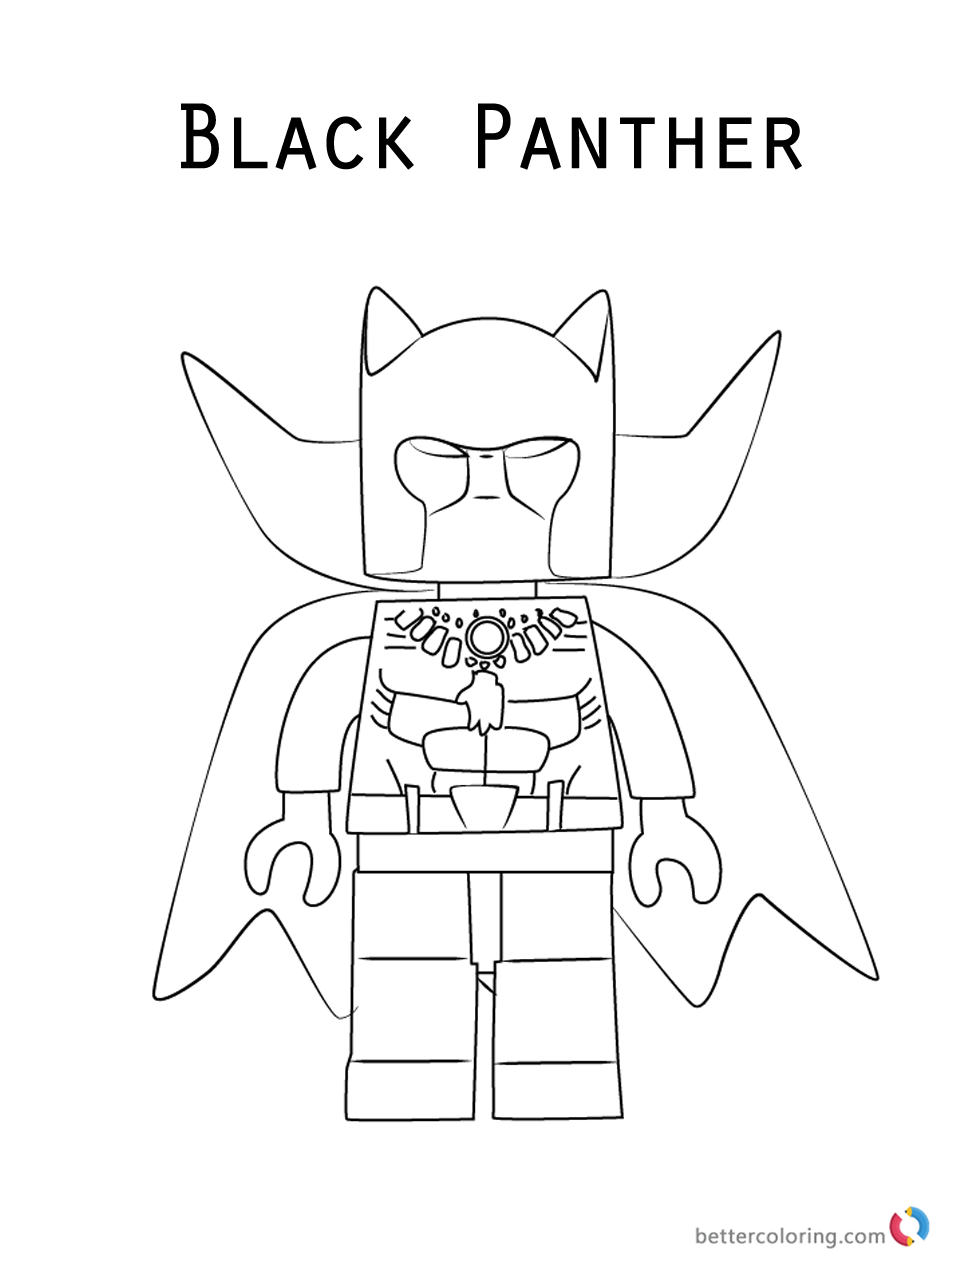 Marvel Black Panther LEGO Coloring Page Printable